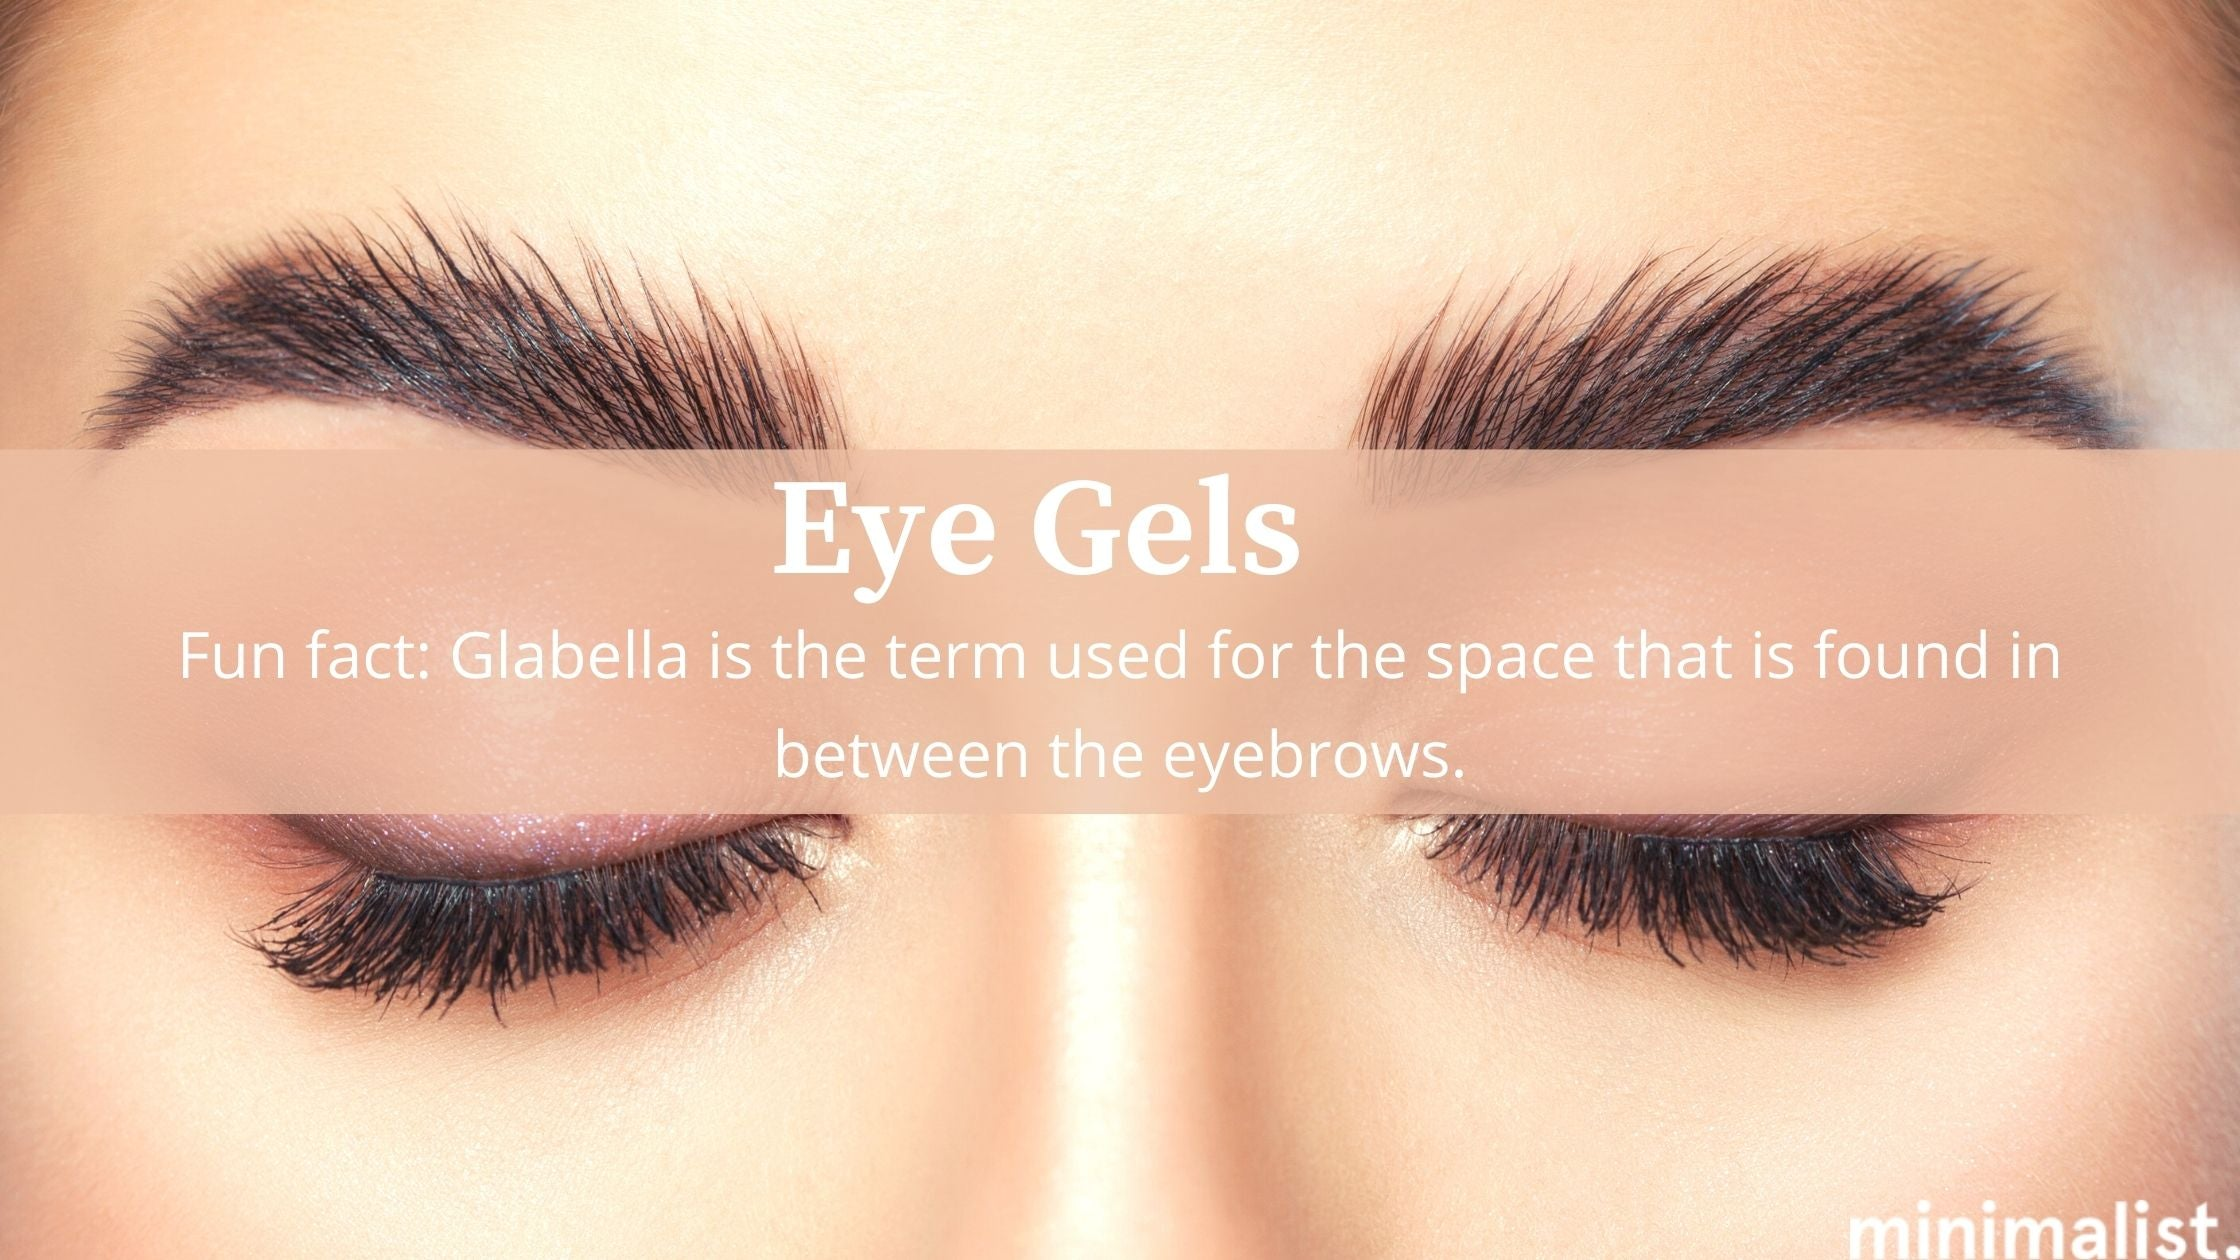 What are eye gels?